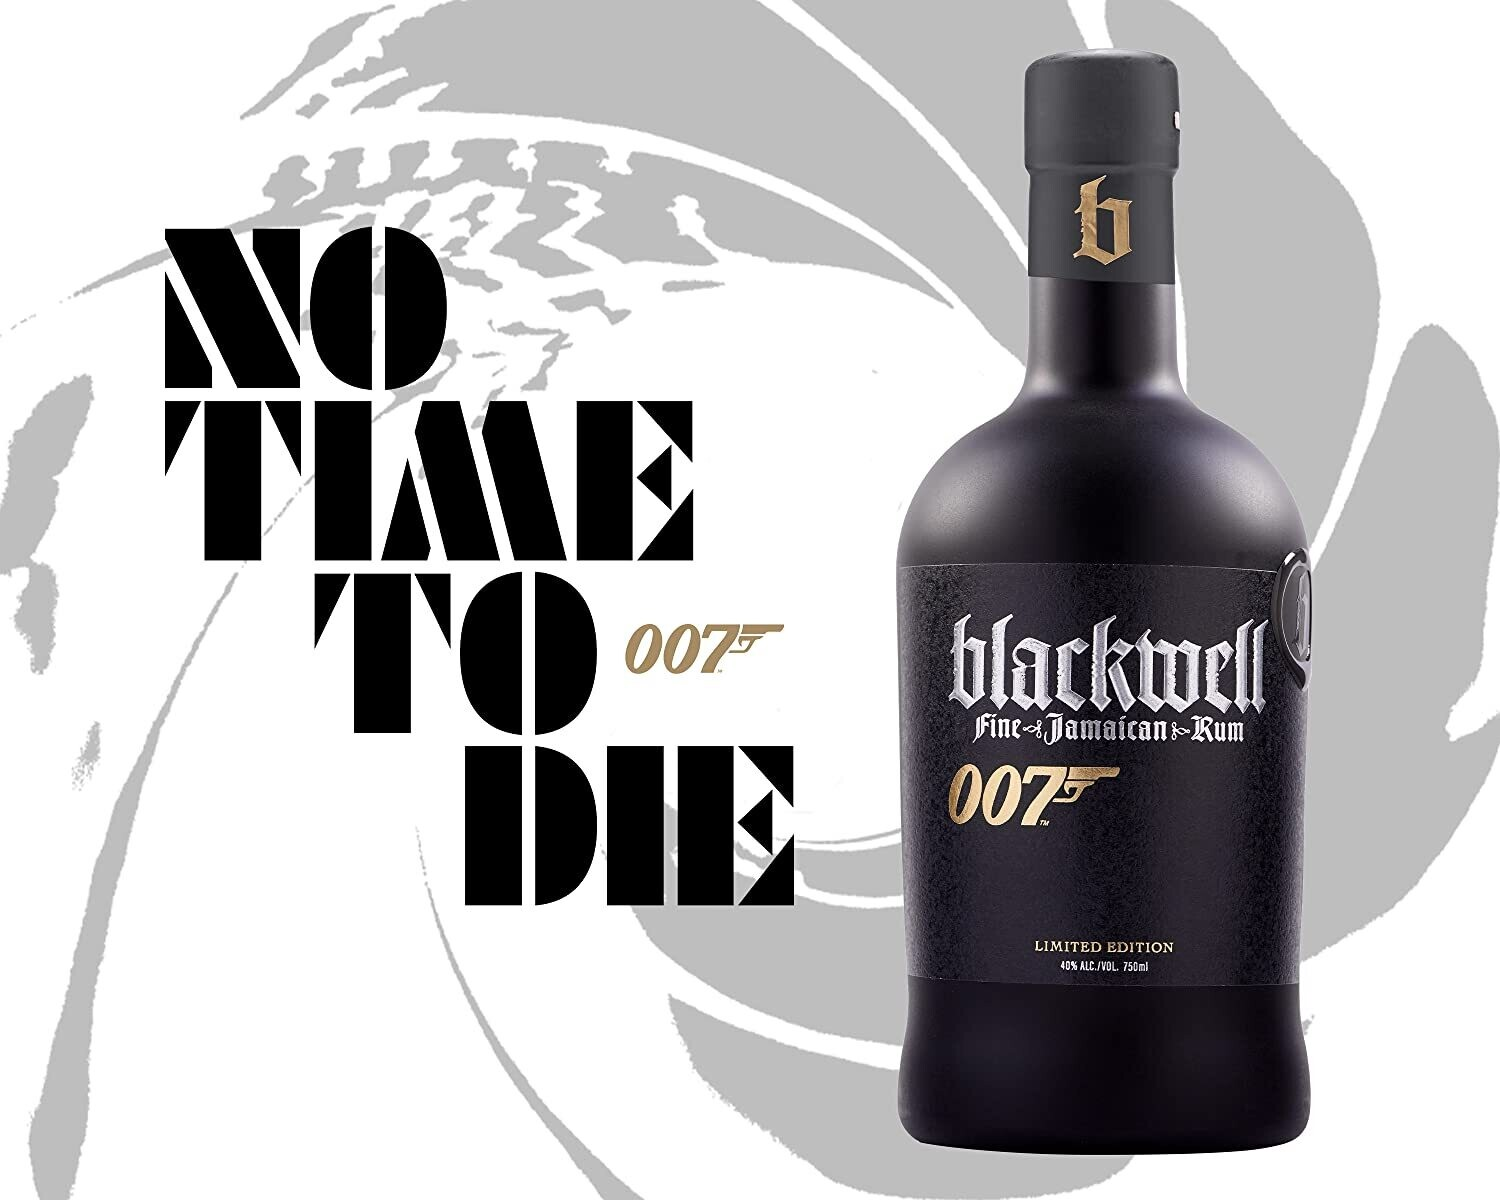 Blackwell Rum 007 40% 70CL